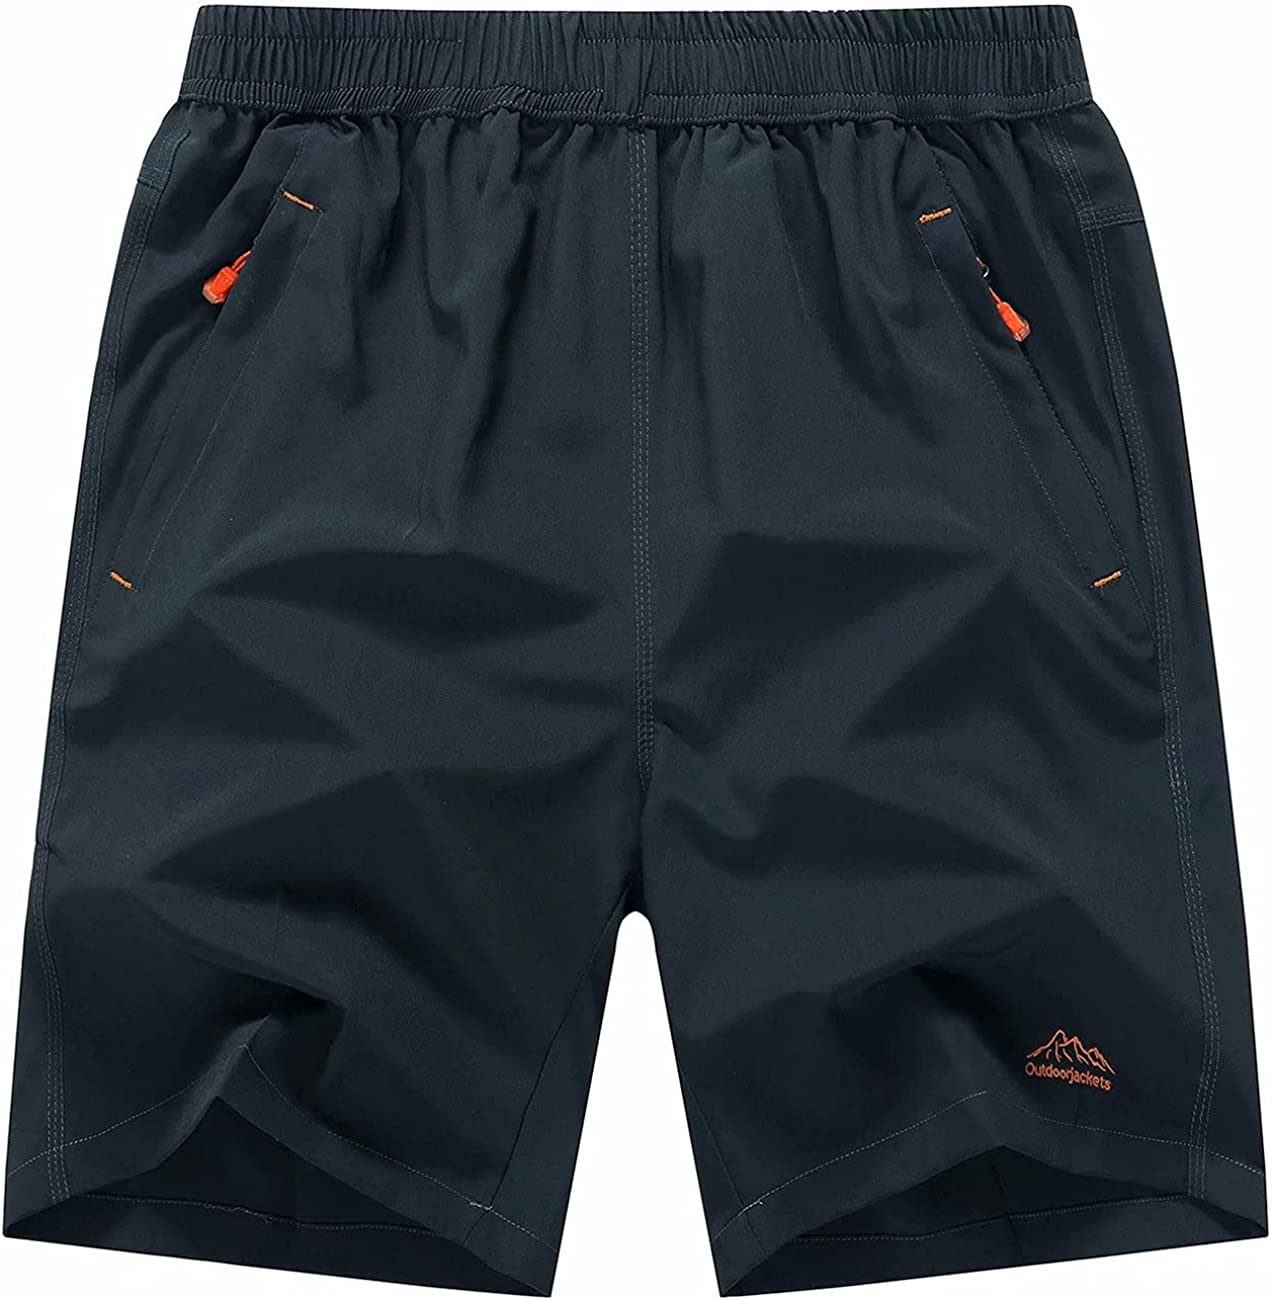 MAGCOMSEN Men's Shorts Quick National uniform free shipping Dry Zi NEW before selling ☆ with Running Athletic